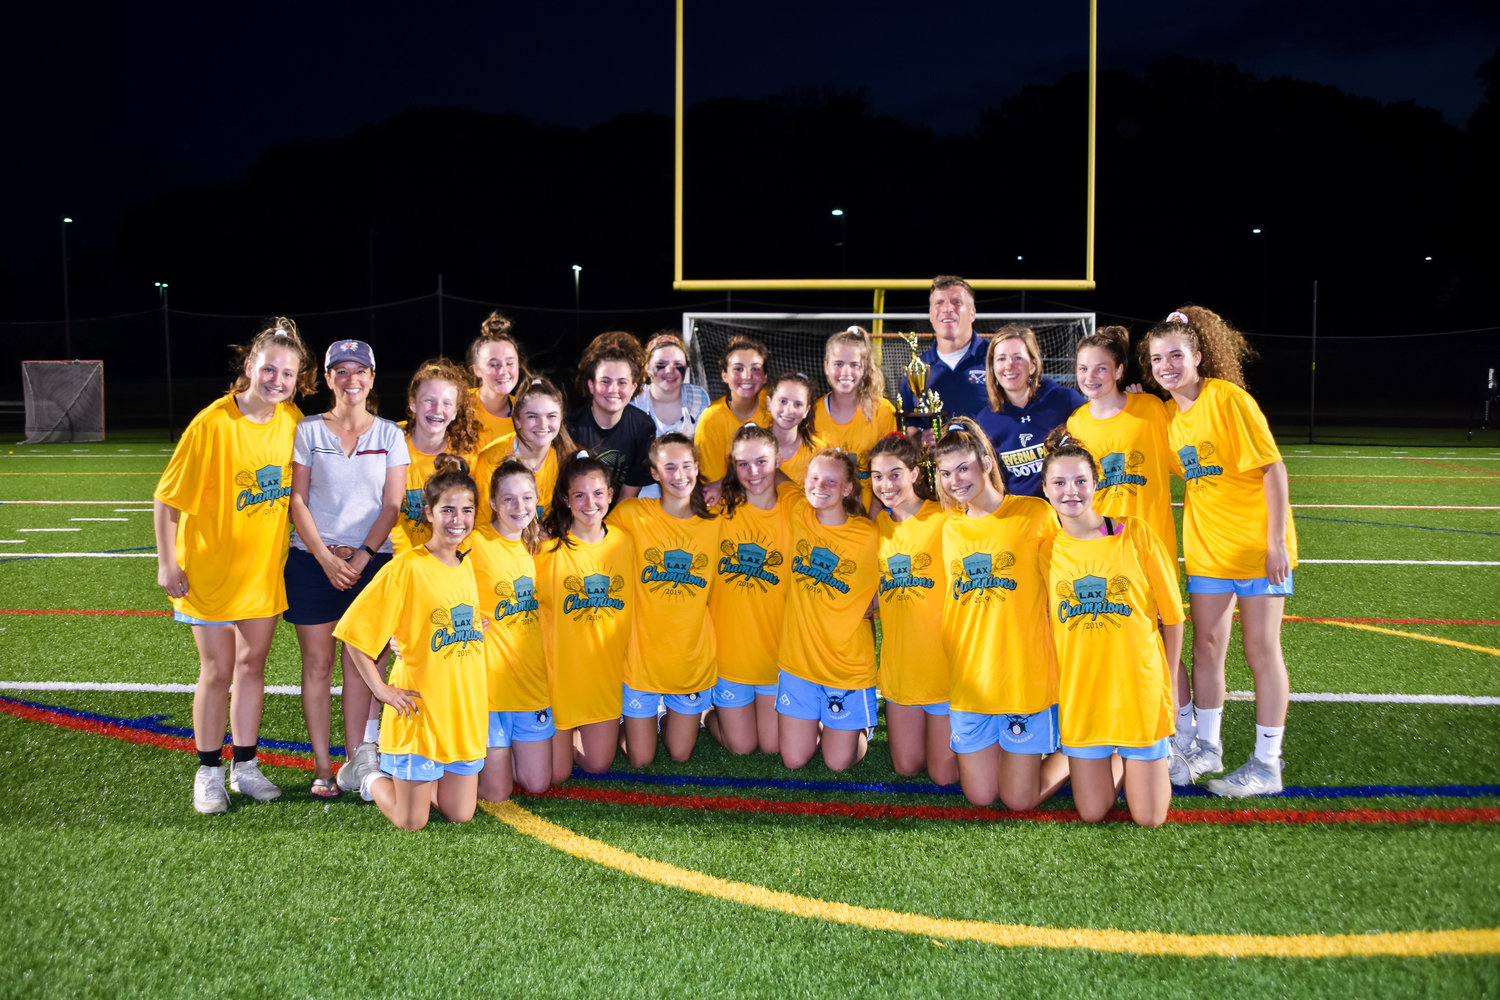 The Elvaton Icebreakers went 9-2 overall and defeated South River and Broadneck in the playoffs, winning the Anne Arundel County Junior A Division championship game 9-8 in overtime against Broadneck at Chesapeake High School on May 18.